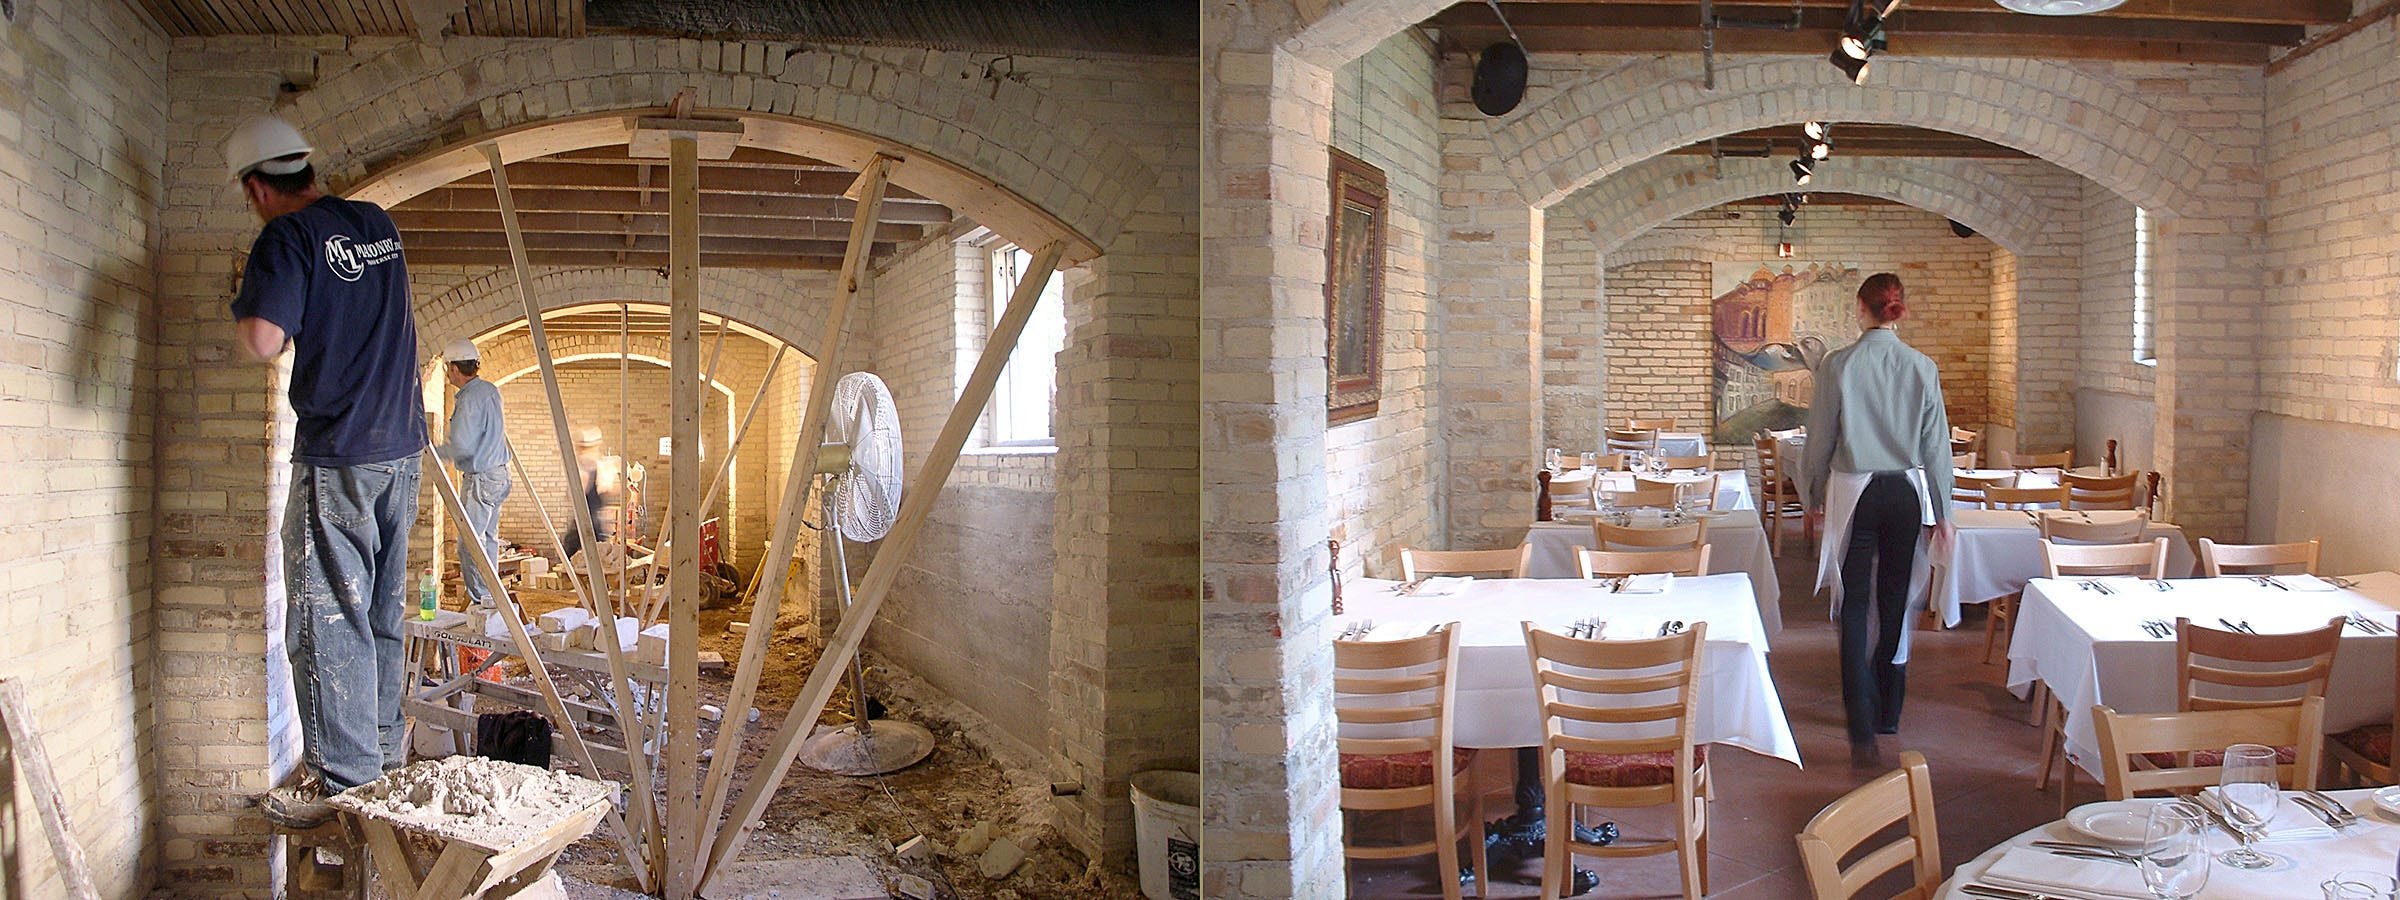 This before-and-after collage shows a restored portion of the former Traverse City State Hospital. The space now holds Trattoria Stella, considered one of the finest Italian eateries in the Midwest.